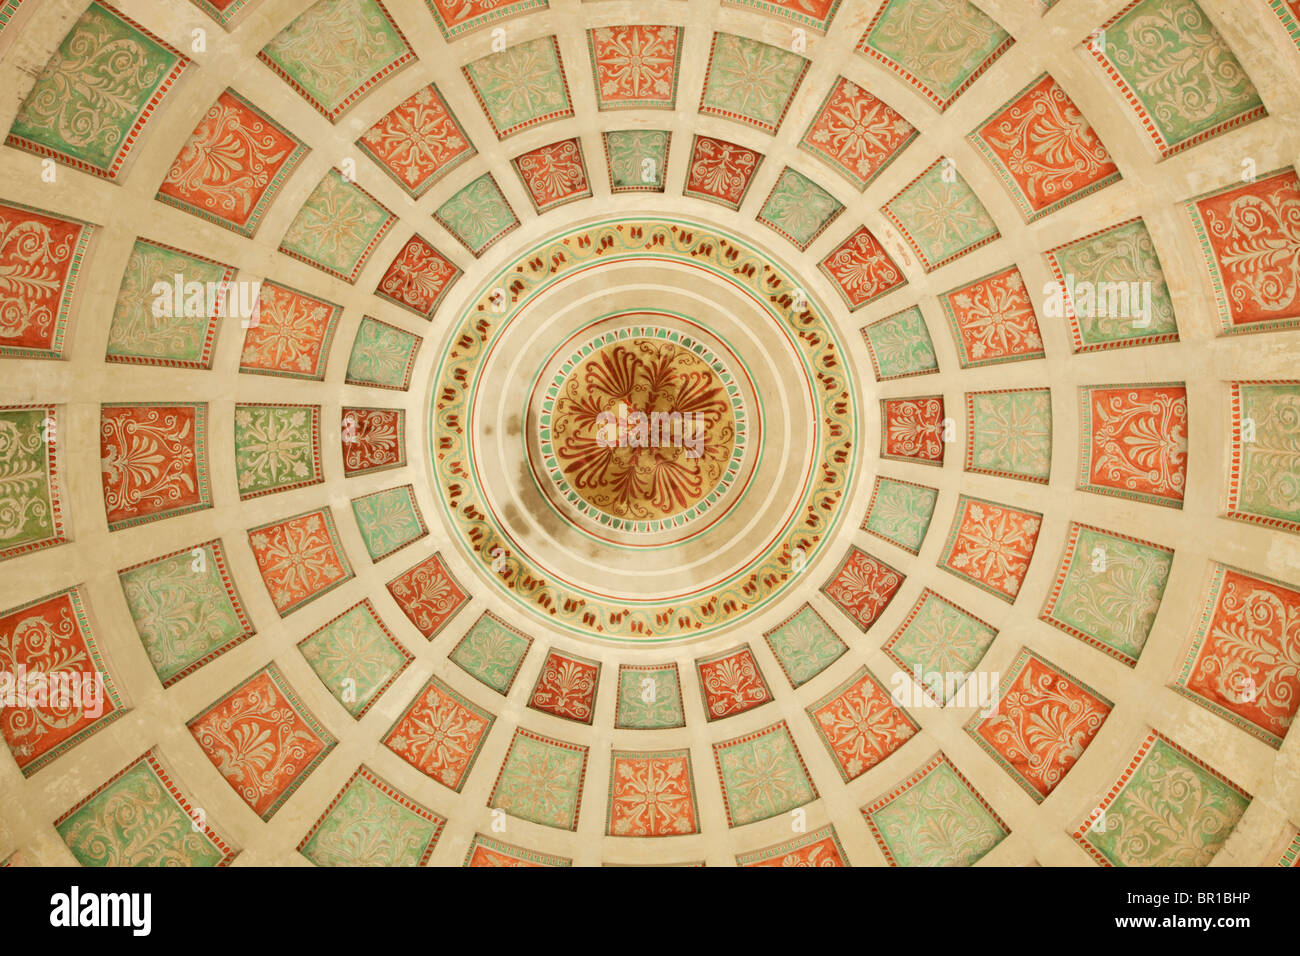 fresco inside the Monopteros temple at Englischer Garten park, Munich - Stock Image